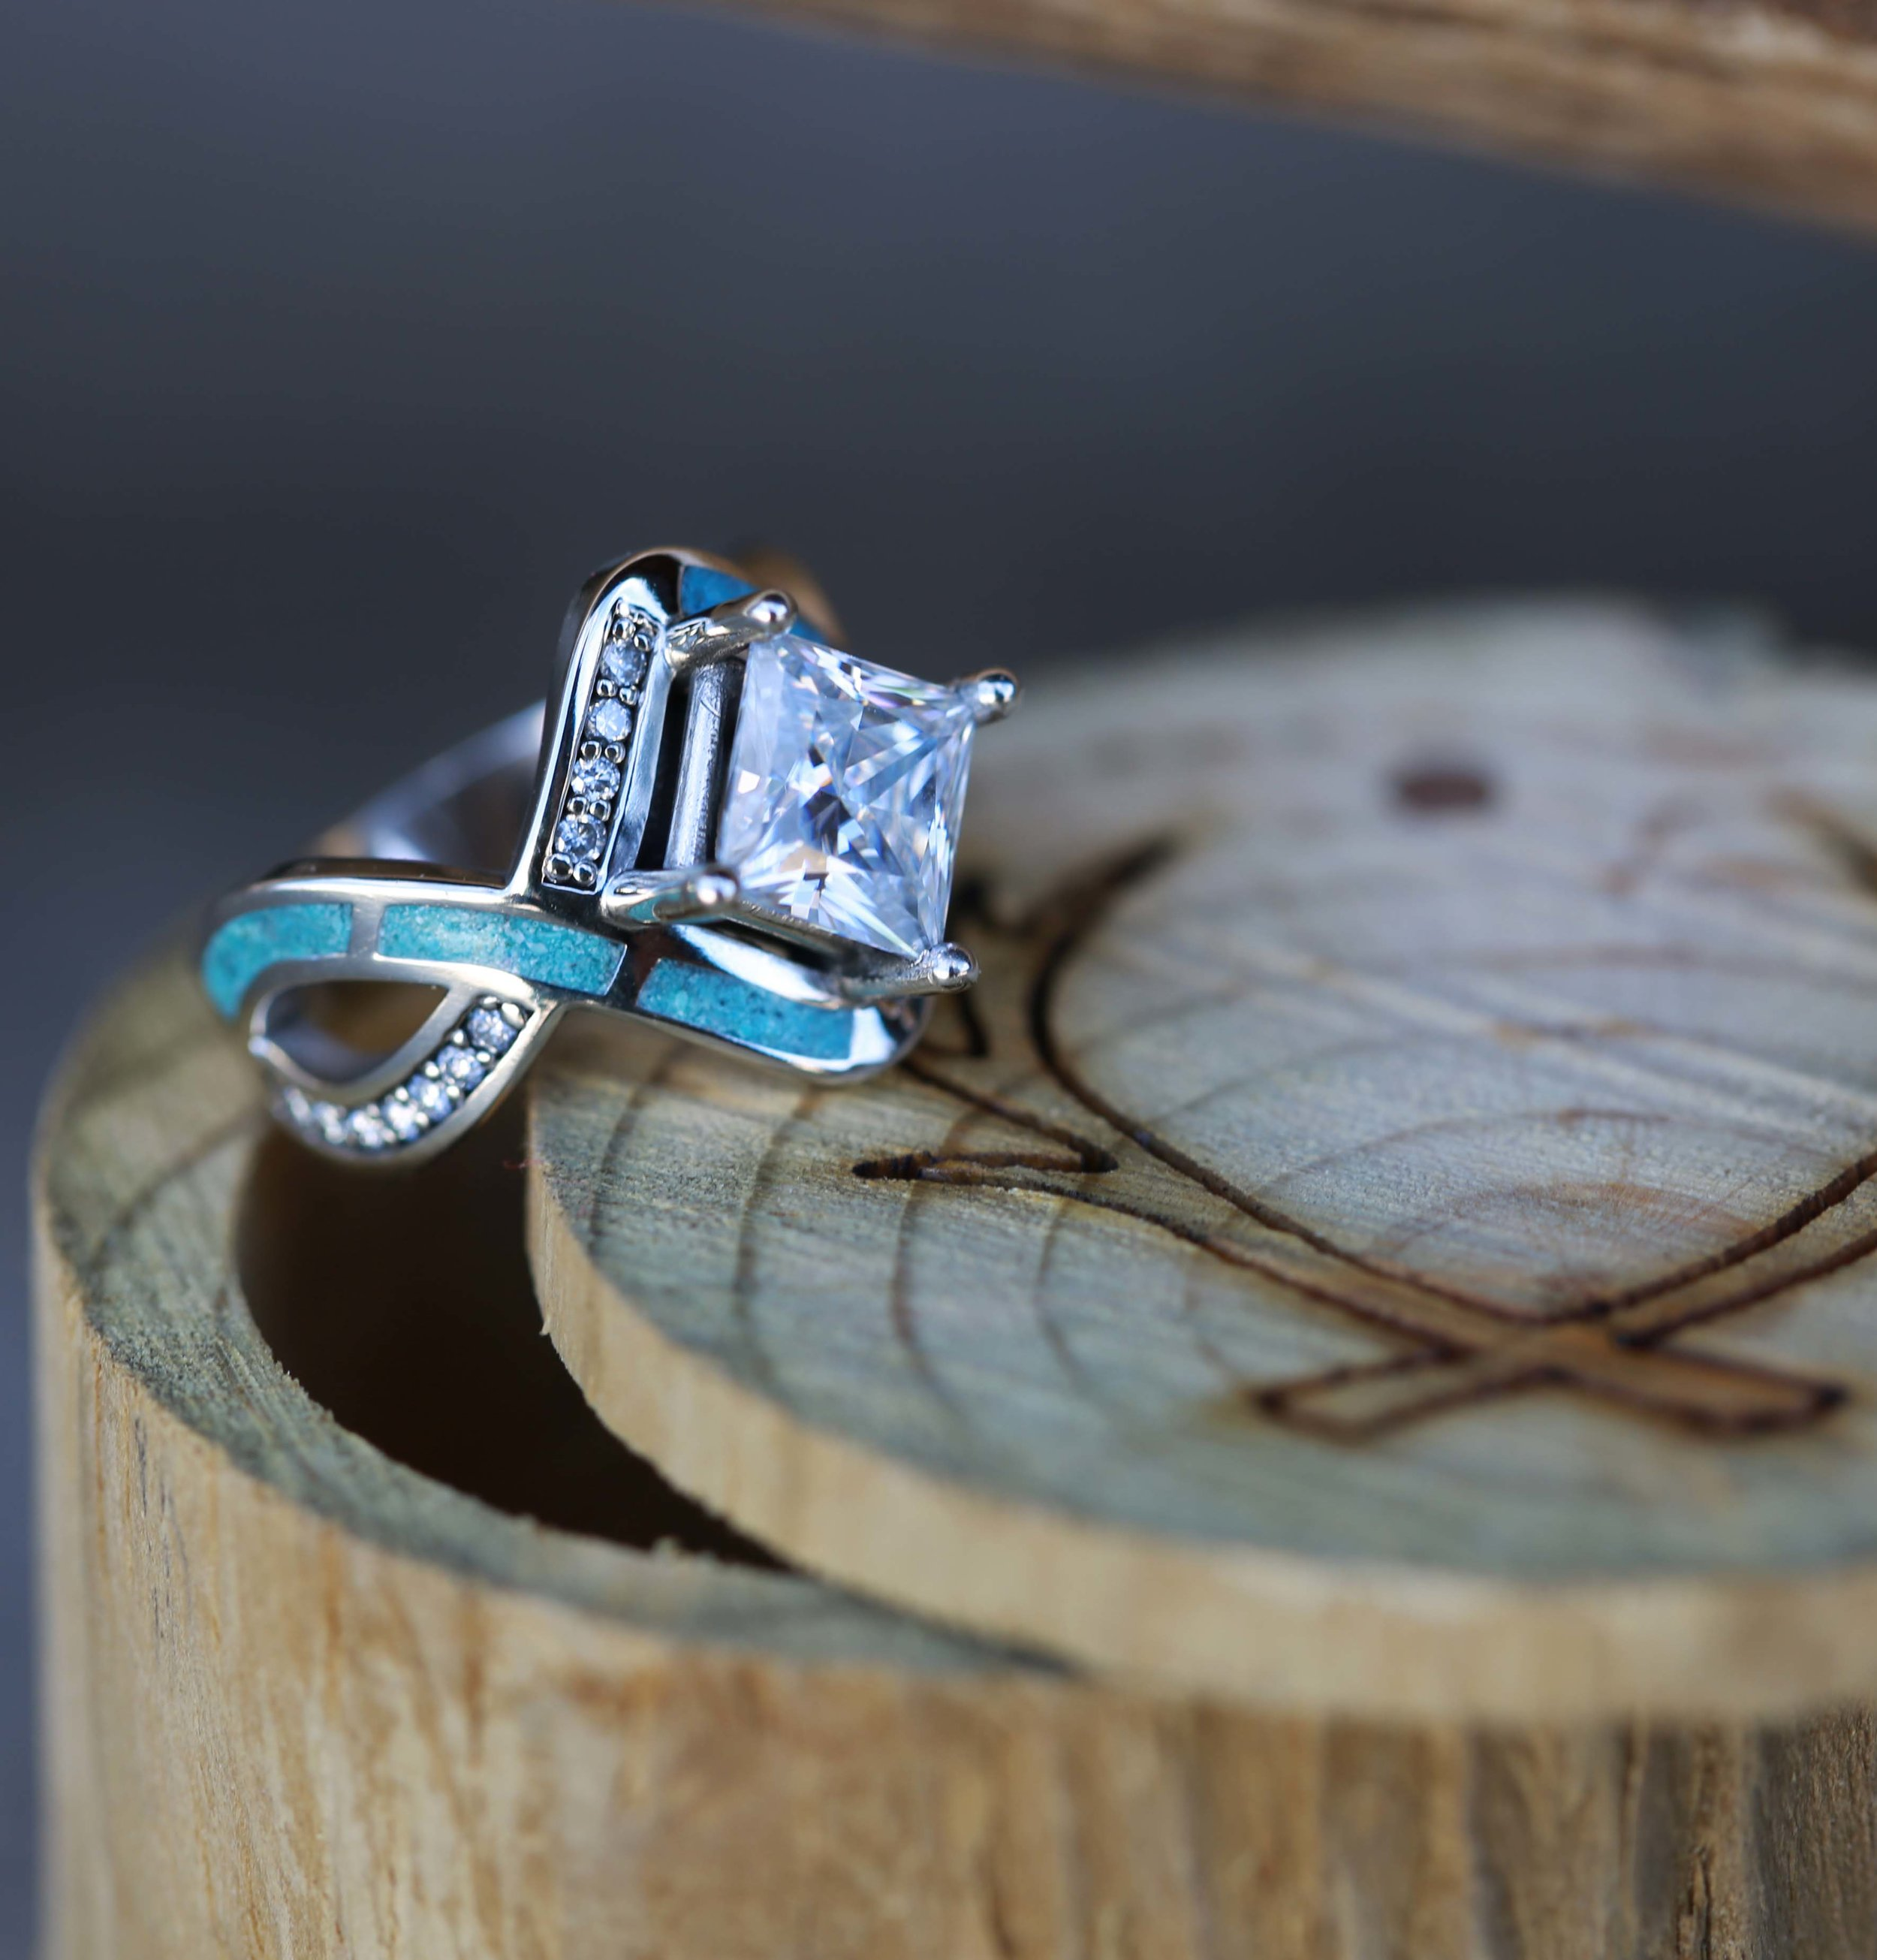 1CT Moissanite Engagement Ring W Turquoise Inlay